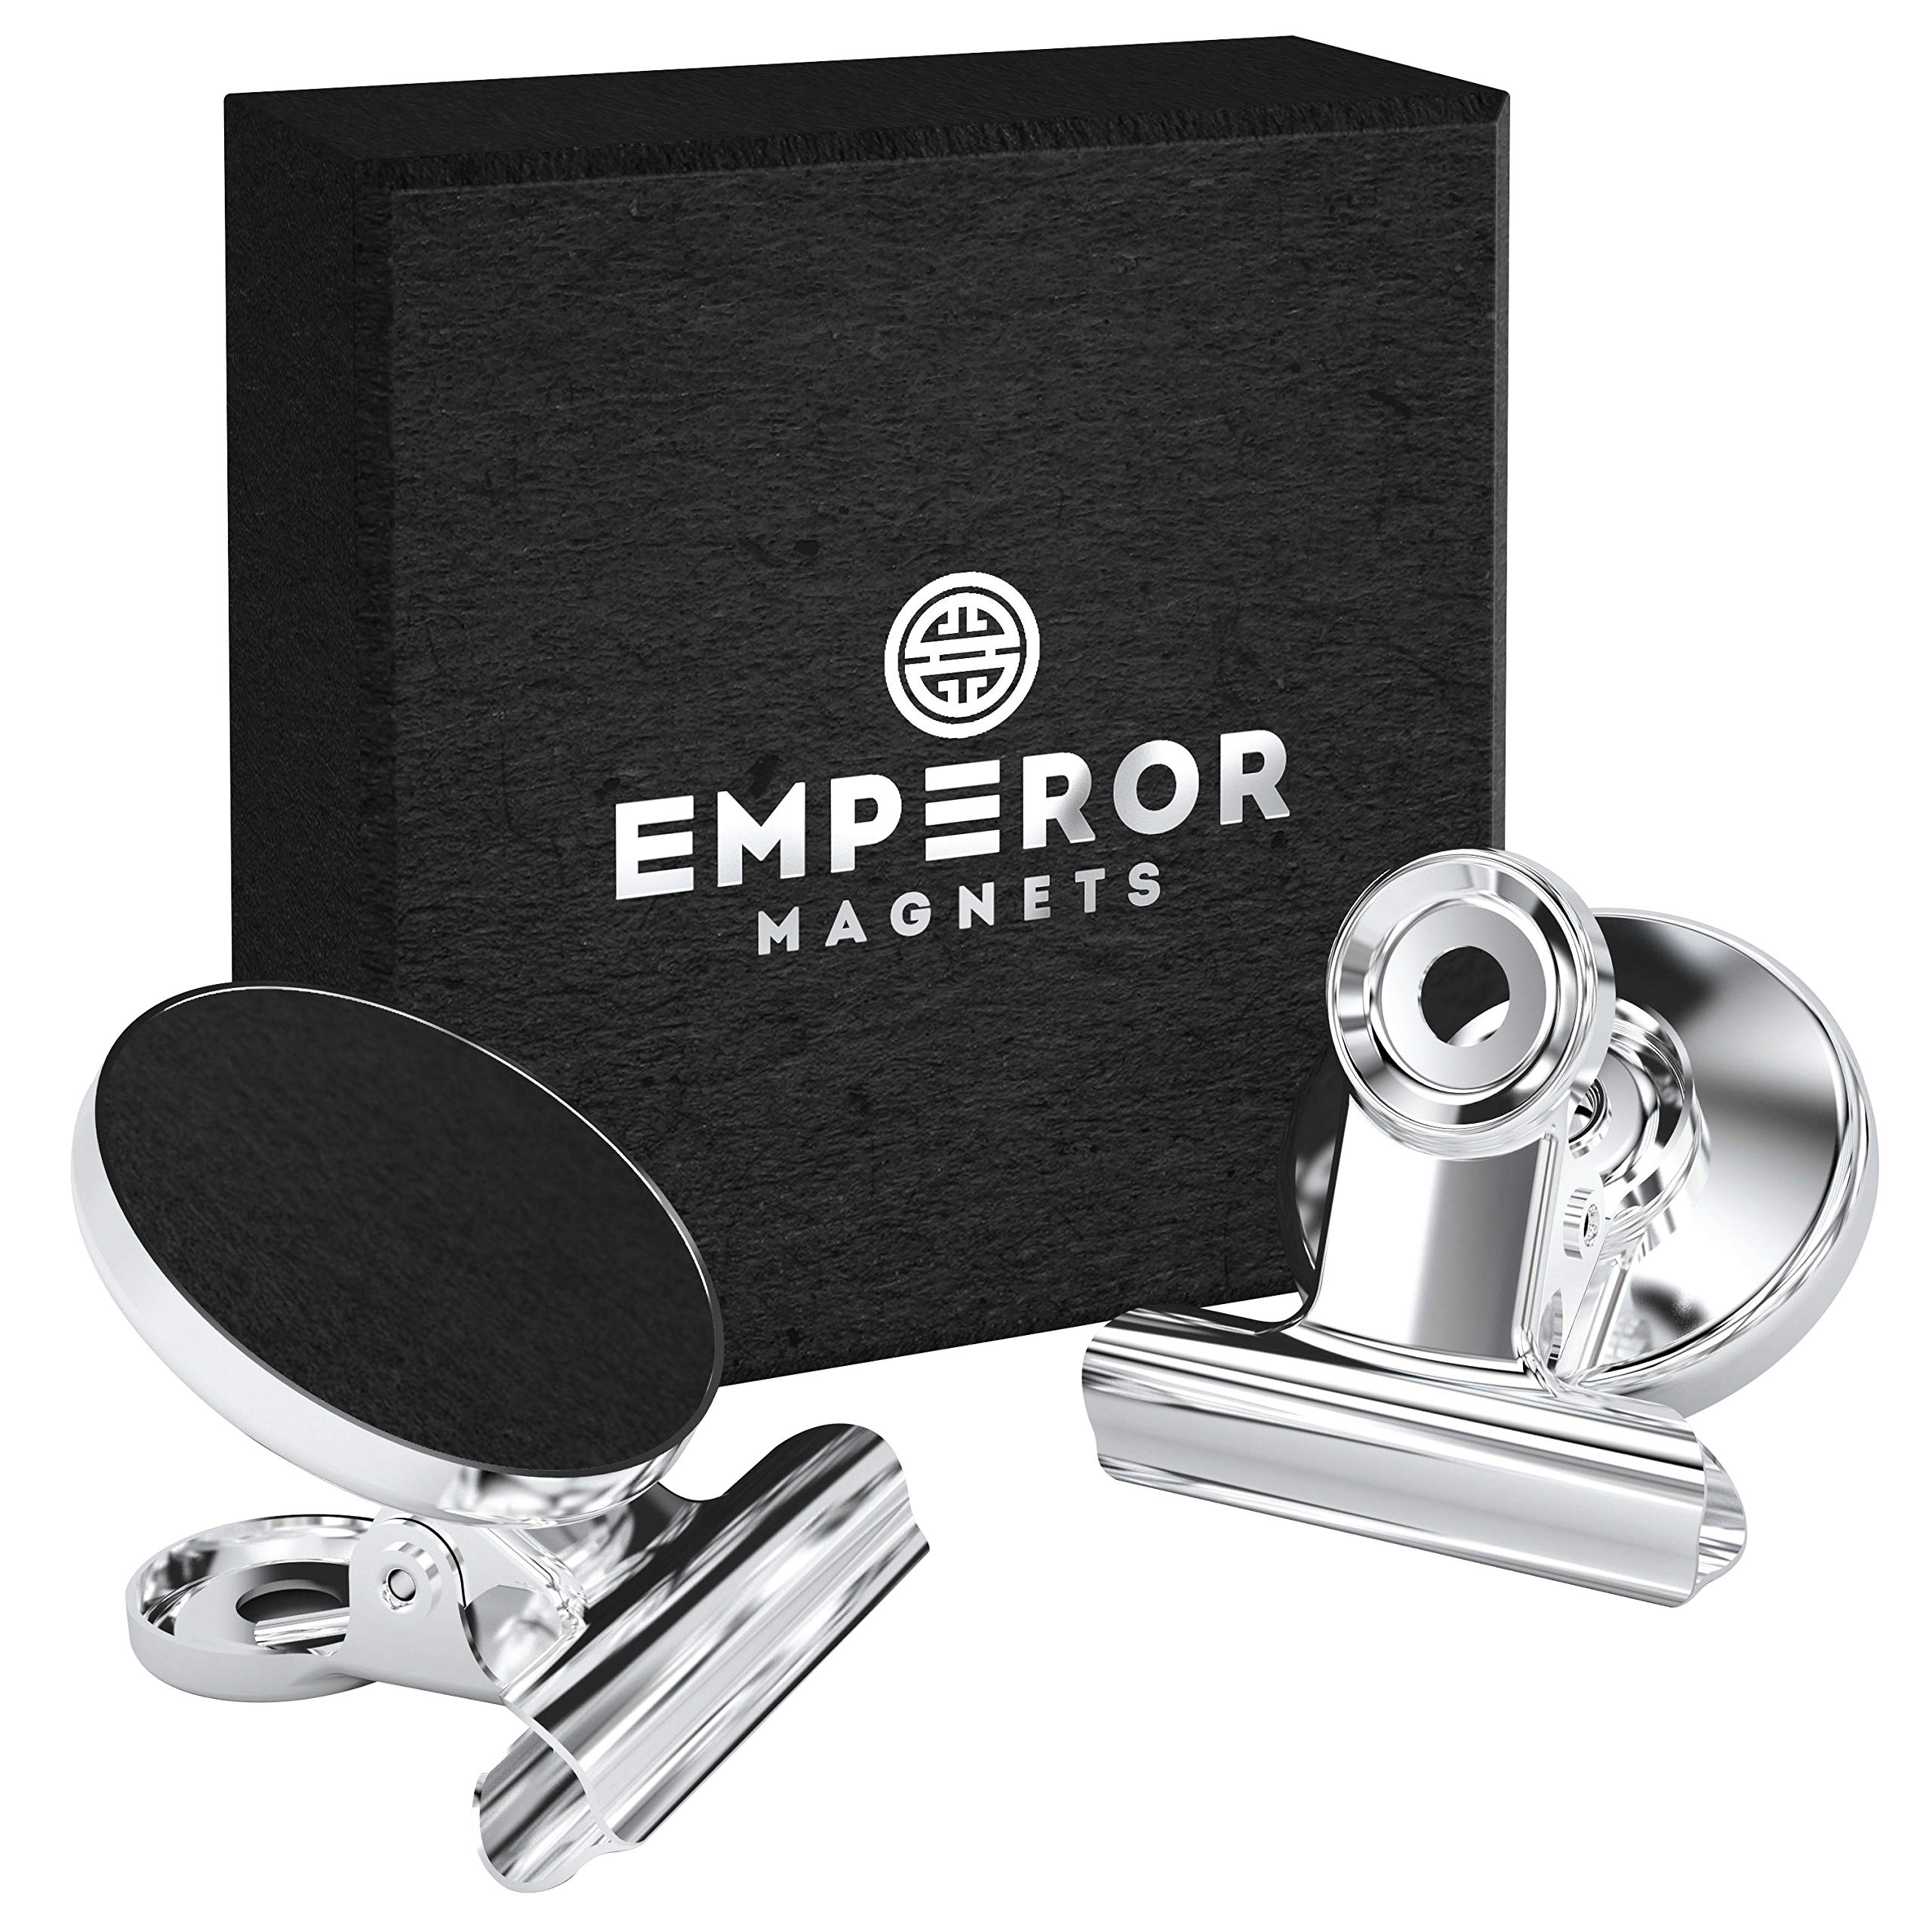 Emperor Magnets - Strong Refrigerator Magnets | Mini Powerful Fridge Magnets | Small Round Kitchen Magnet Hook Clips | Heavy Duty Metal Silver Finish Ideal For Office Whiteboard, Dry Erase Board